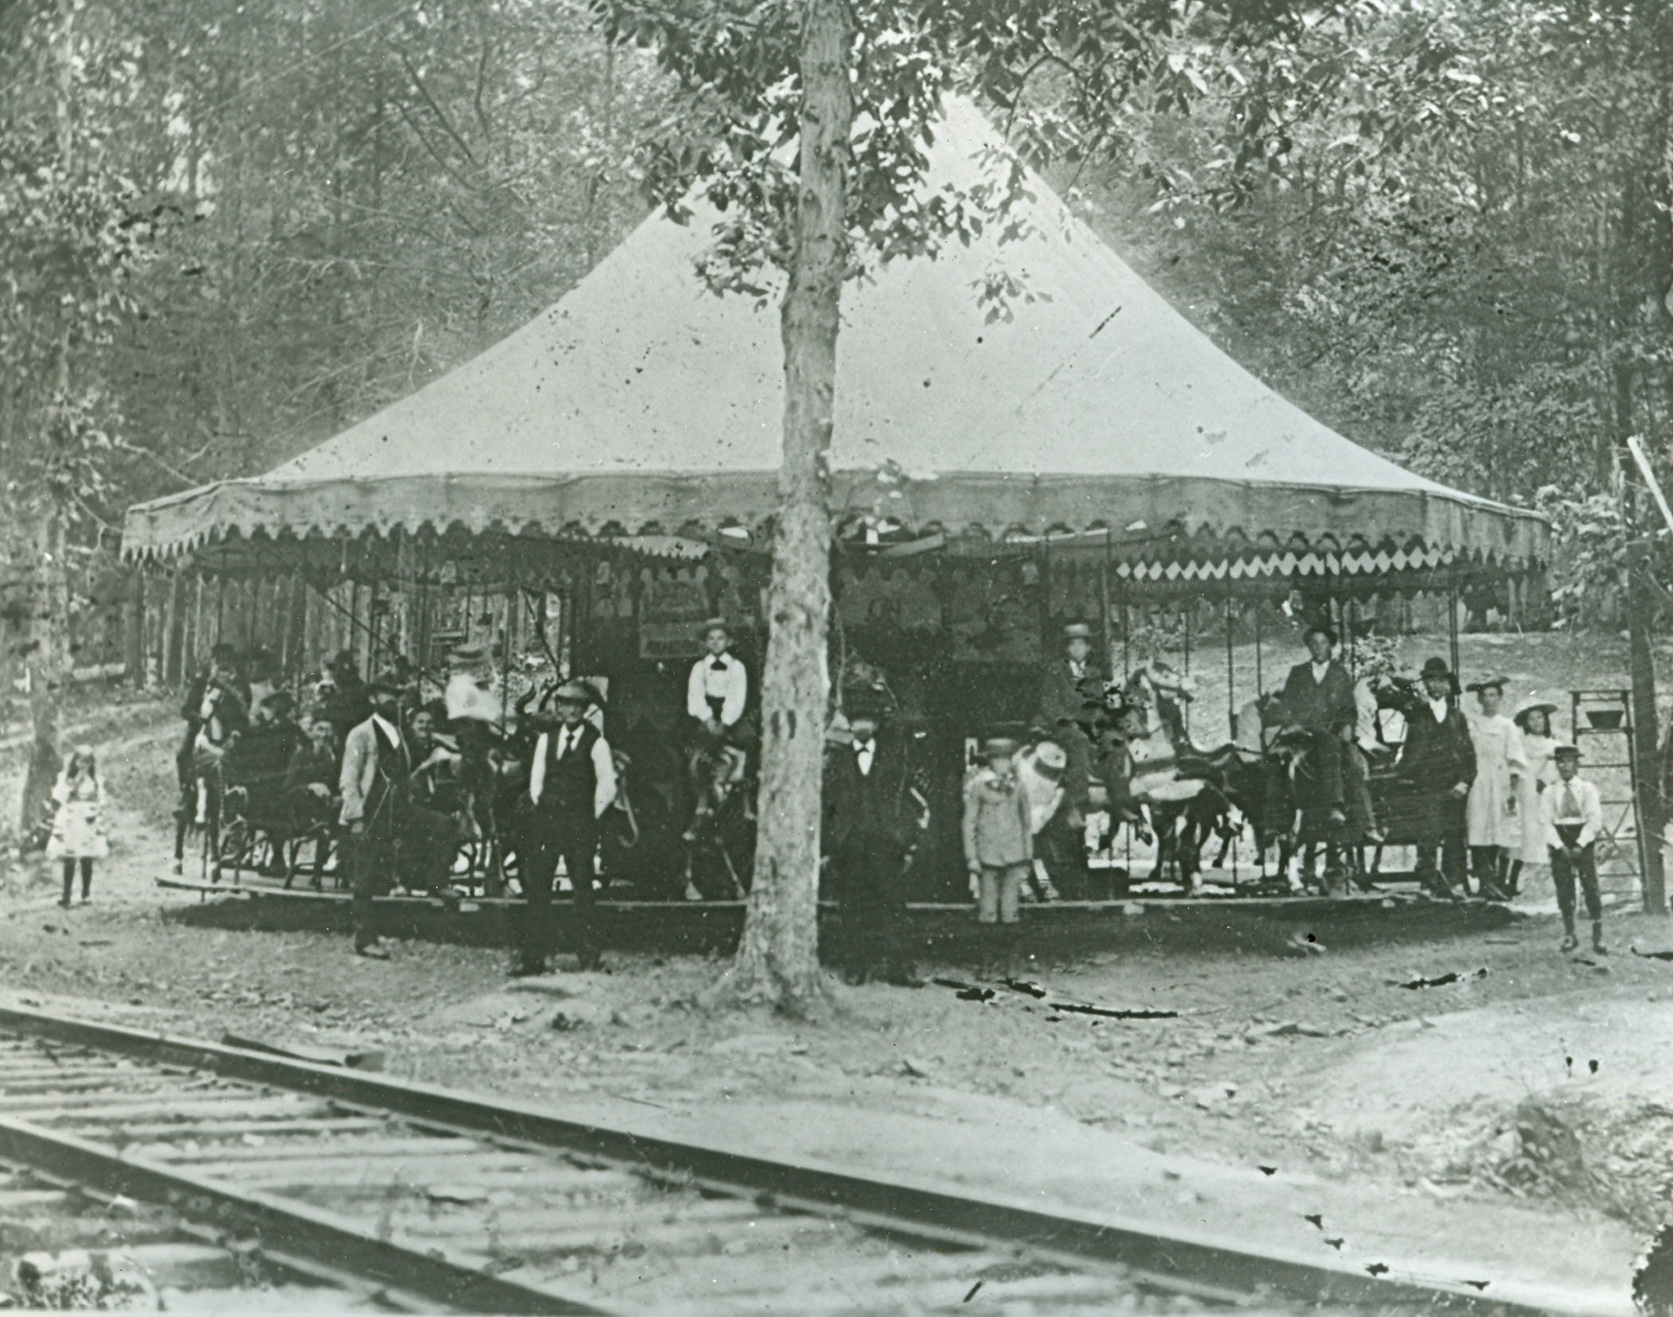 ca-1890-Dentzel-carousel-early-set-up